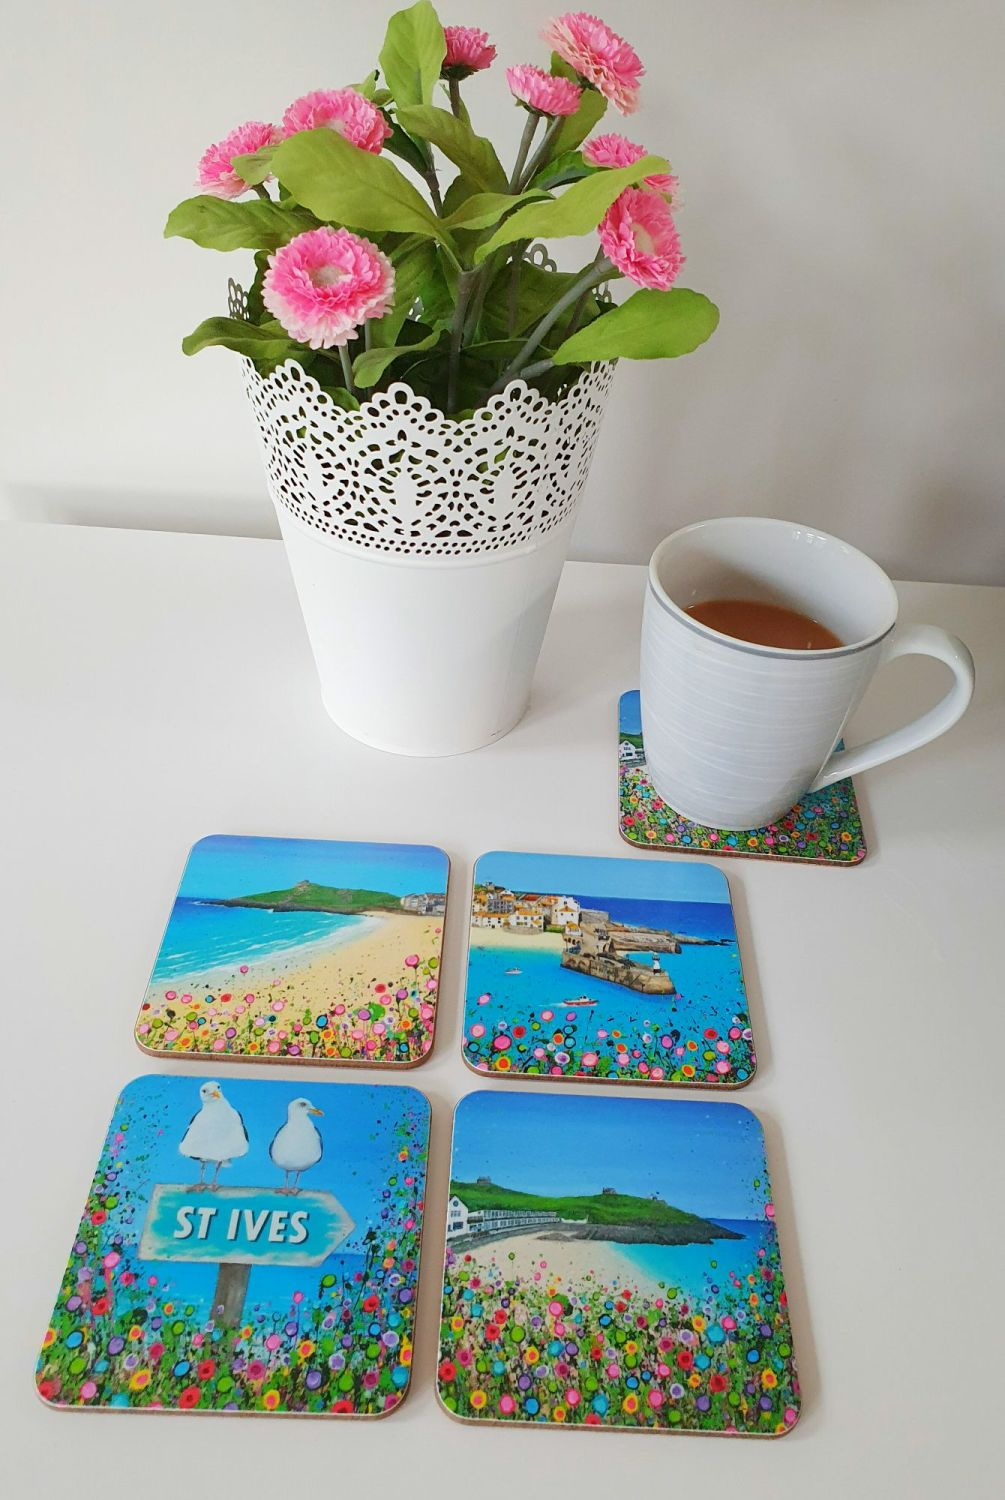 COASTERS - Set of 4 St Ives designs